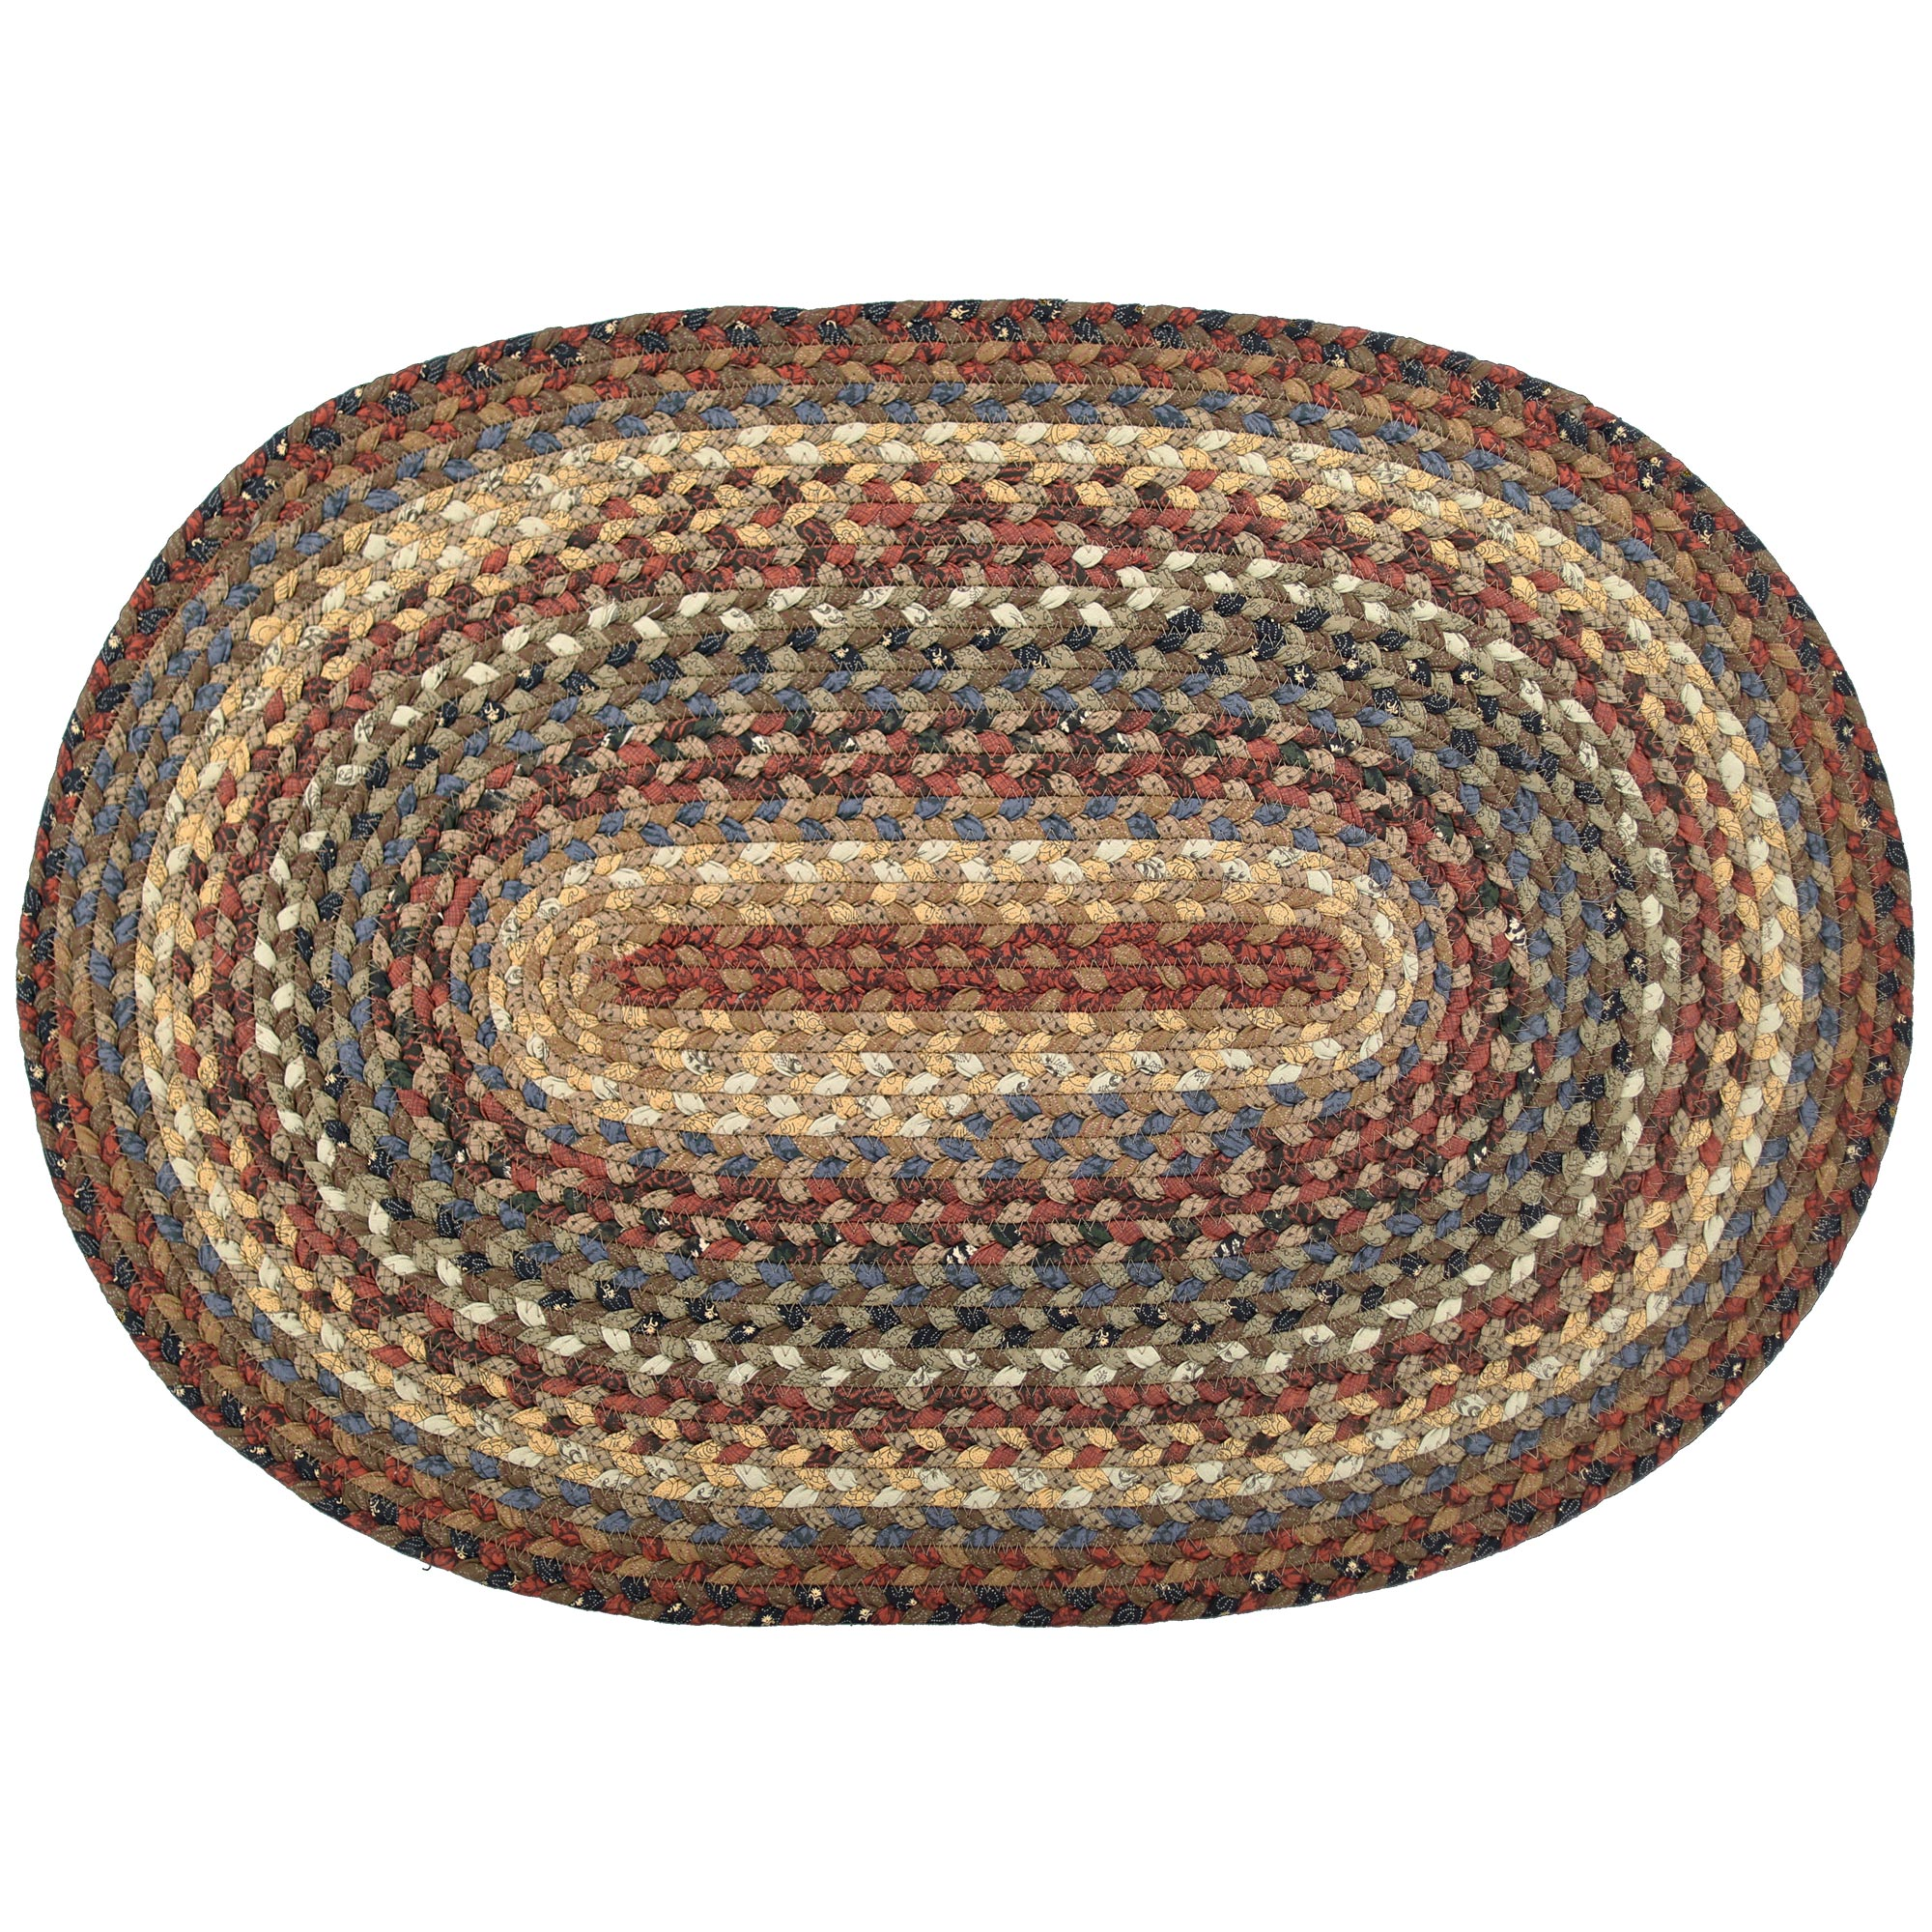 Biscotti Cotton Braided Area Rugs 20x30